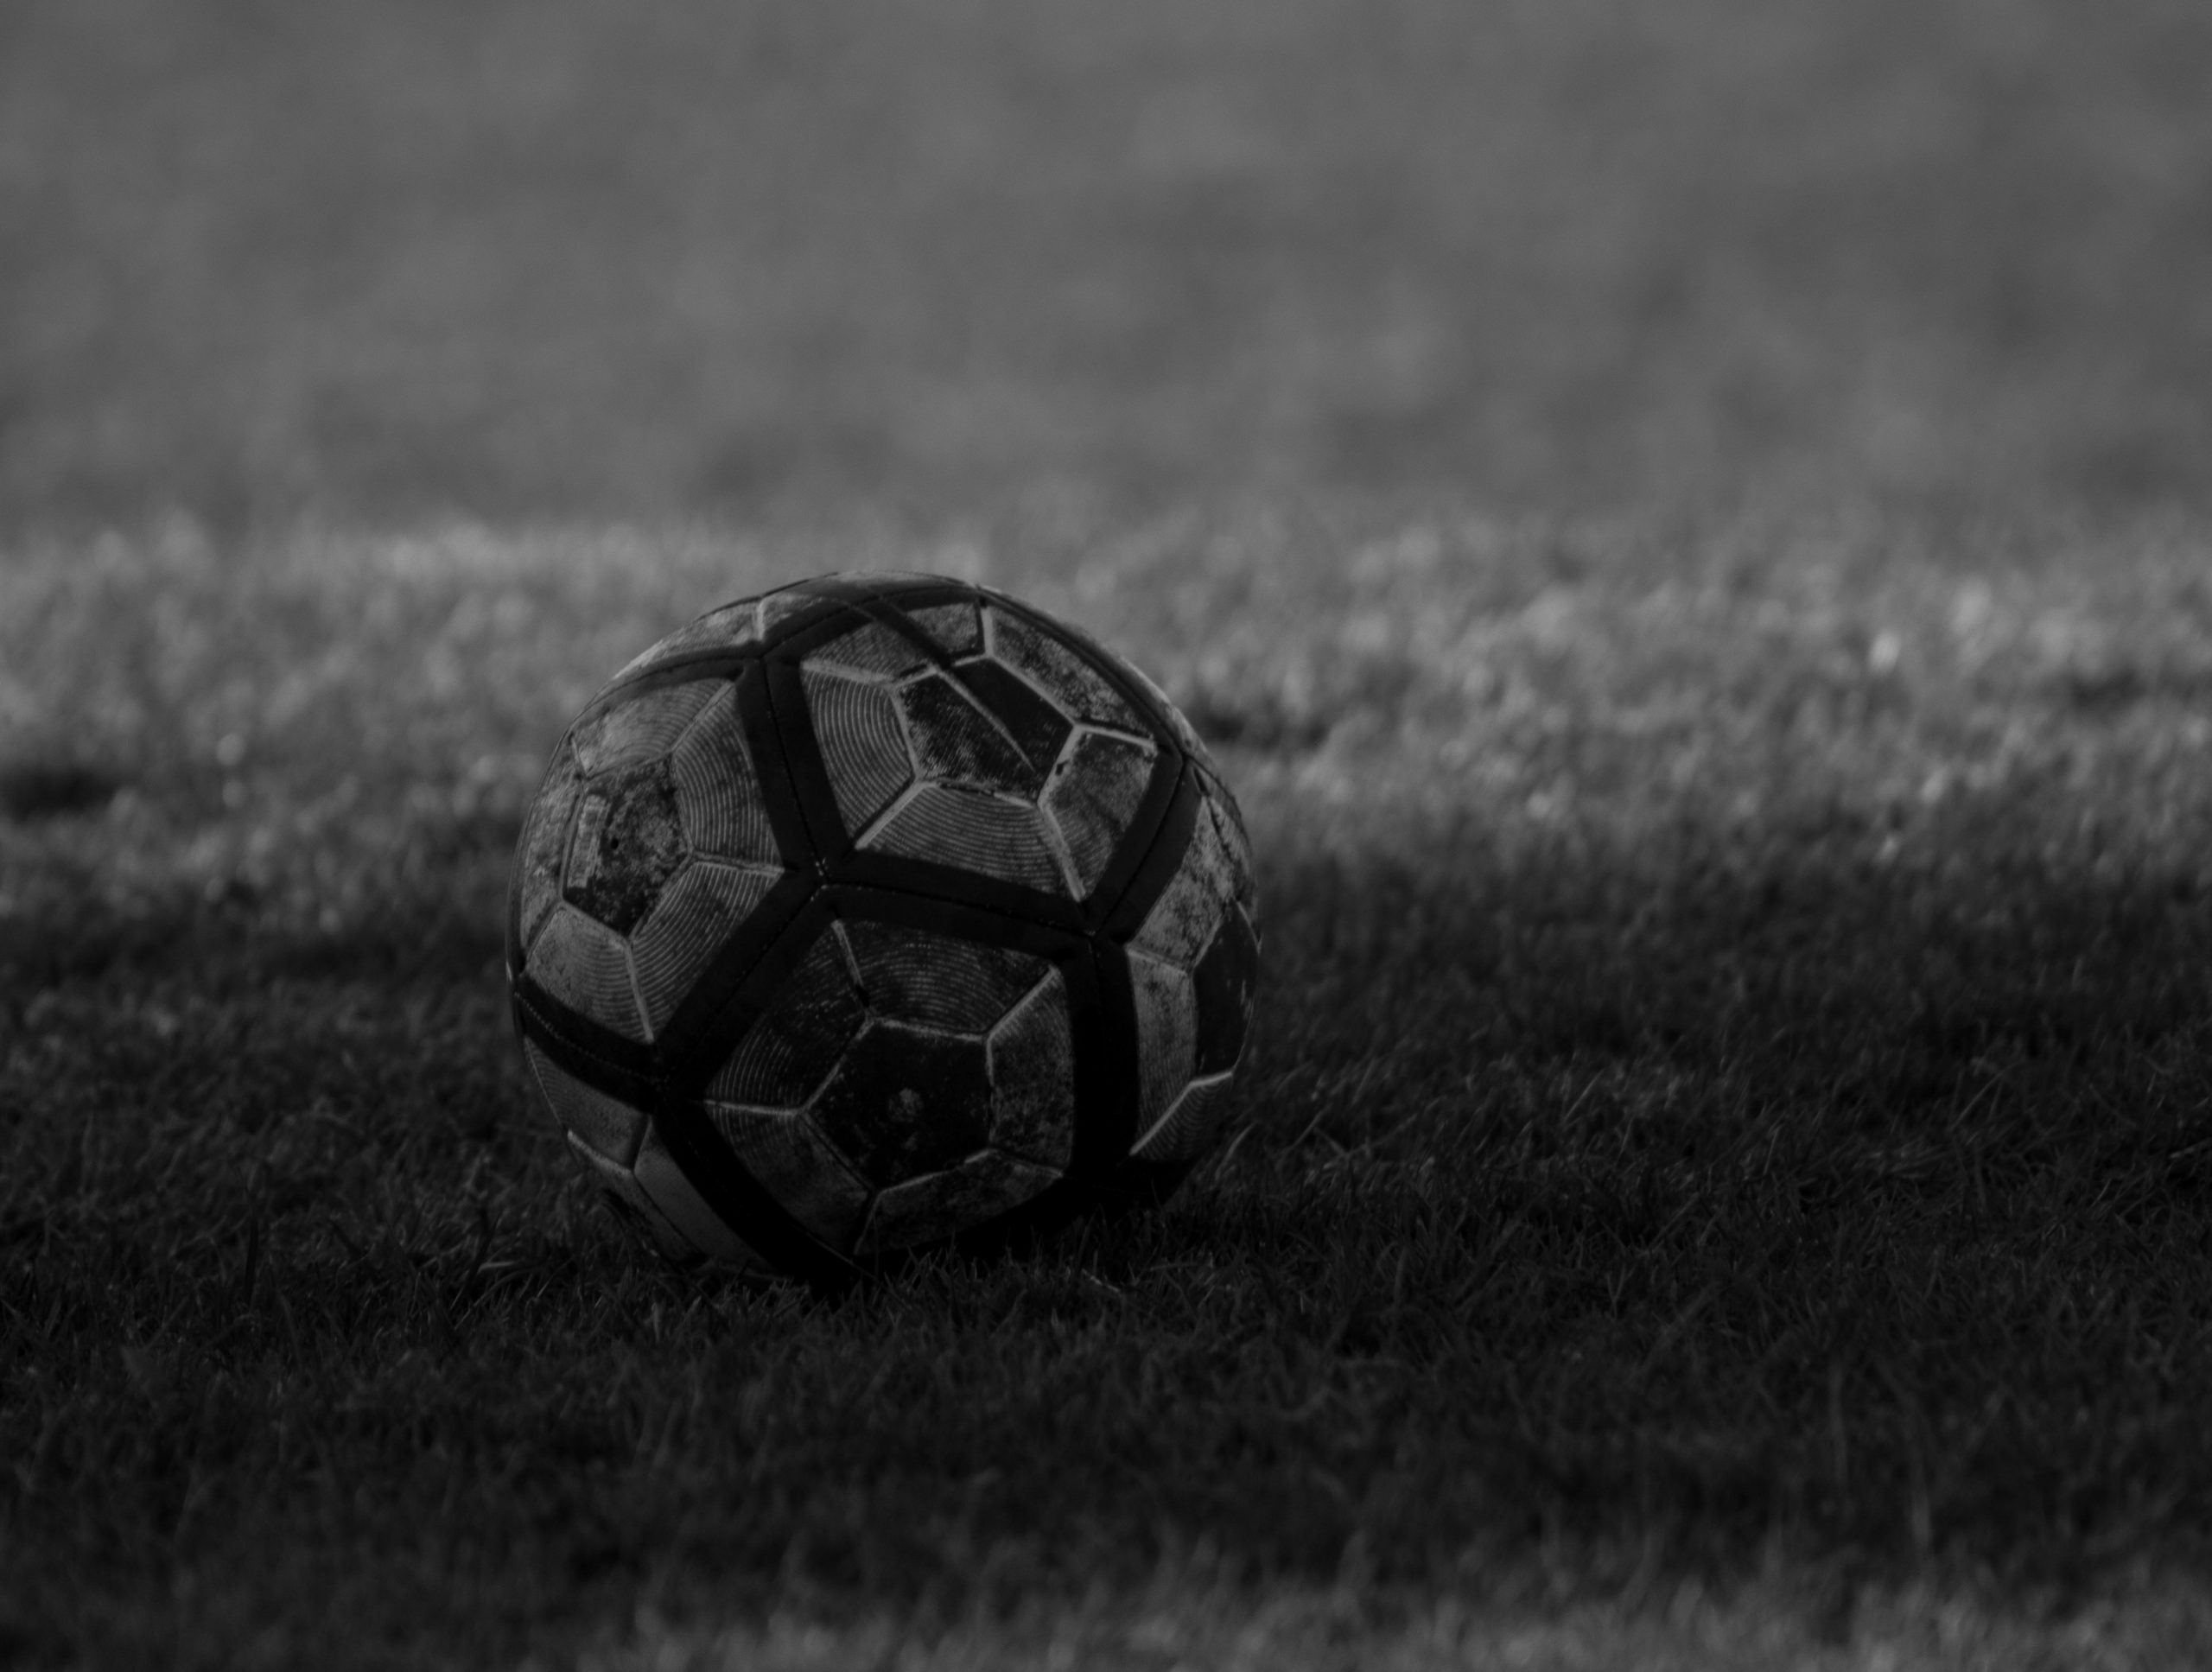 243303-monochrome-black-and-white-and-football-hd